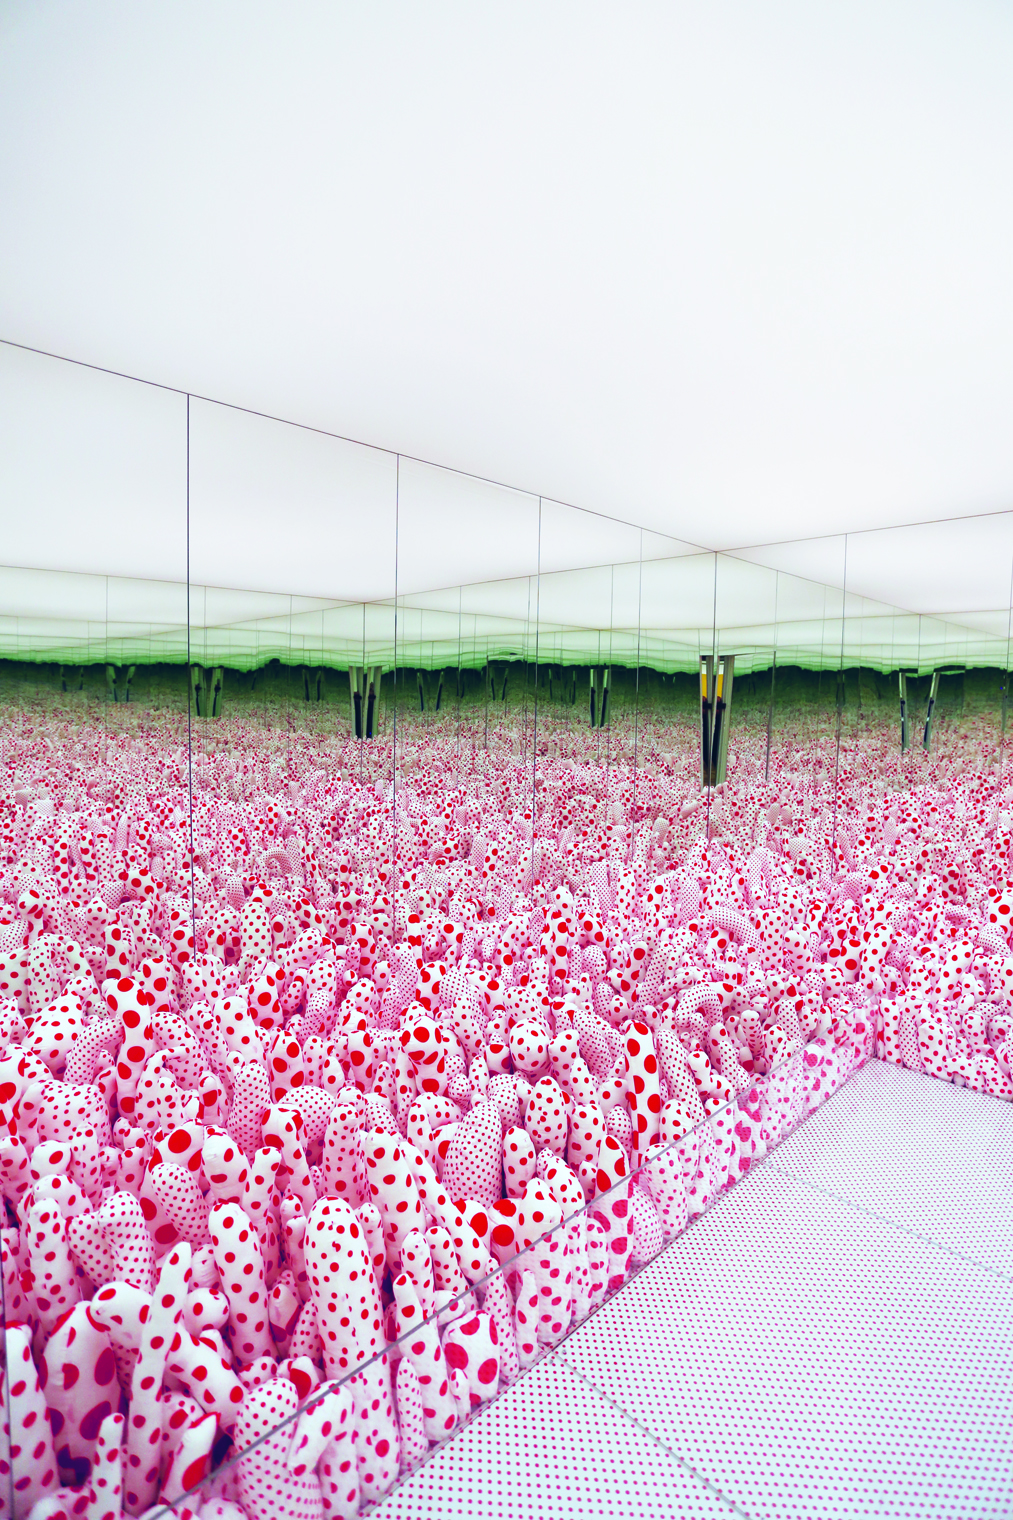 Yayoi Kusama, Infinity Mirror Room - Phalli's Field (Floor Show), 1965, remade 1998. Mixed-media installation, 311 × 476 × 476.5 cm. Courtesy Museum Boijmans Van Beuningen, Rotterdam purchased with support of Stichting Fonds Willem van Rede, Mondriaan Fonds en BankGiro Loterij © Yayoi Kusama